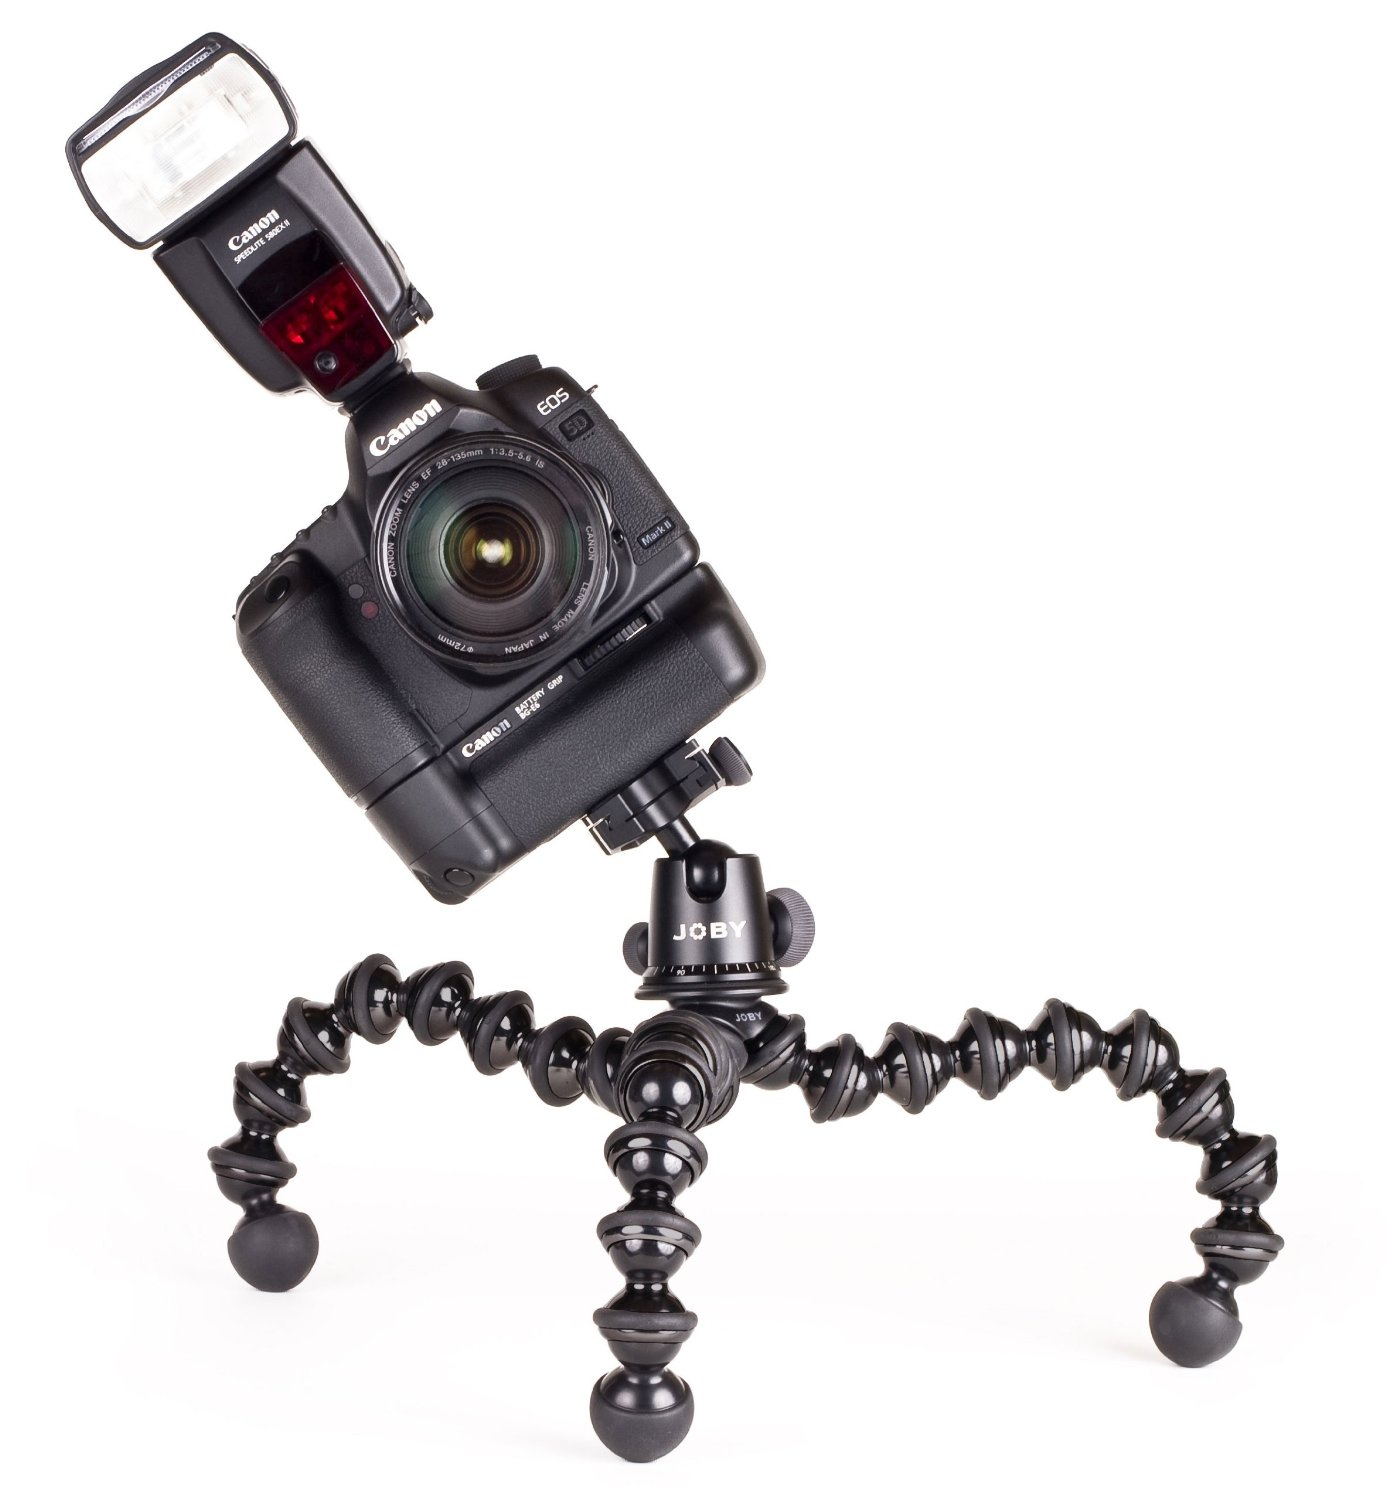 Joby GP8-BHEN GorillaPod Focus with Ballhead X bundle